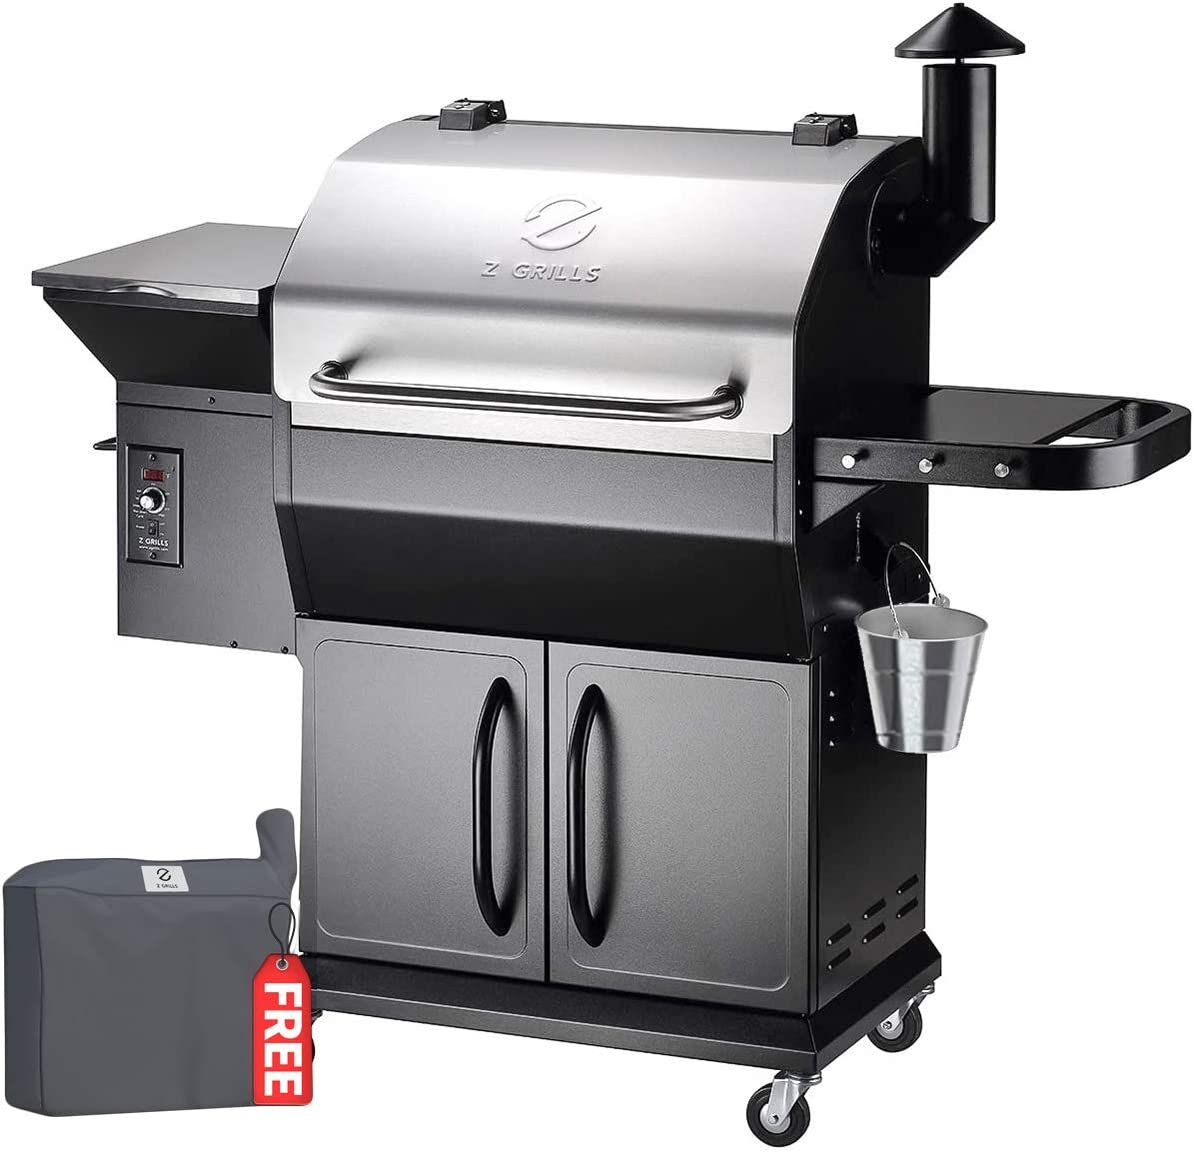 Z GRILLS 2020 Upgrated Wood Pellet Grill and Smoker 1000sqin bbq area 20LB Hopper 8-in-1 Grill Smart Digital control feeding Pellets ZPG-1000E Free Cover